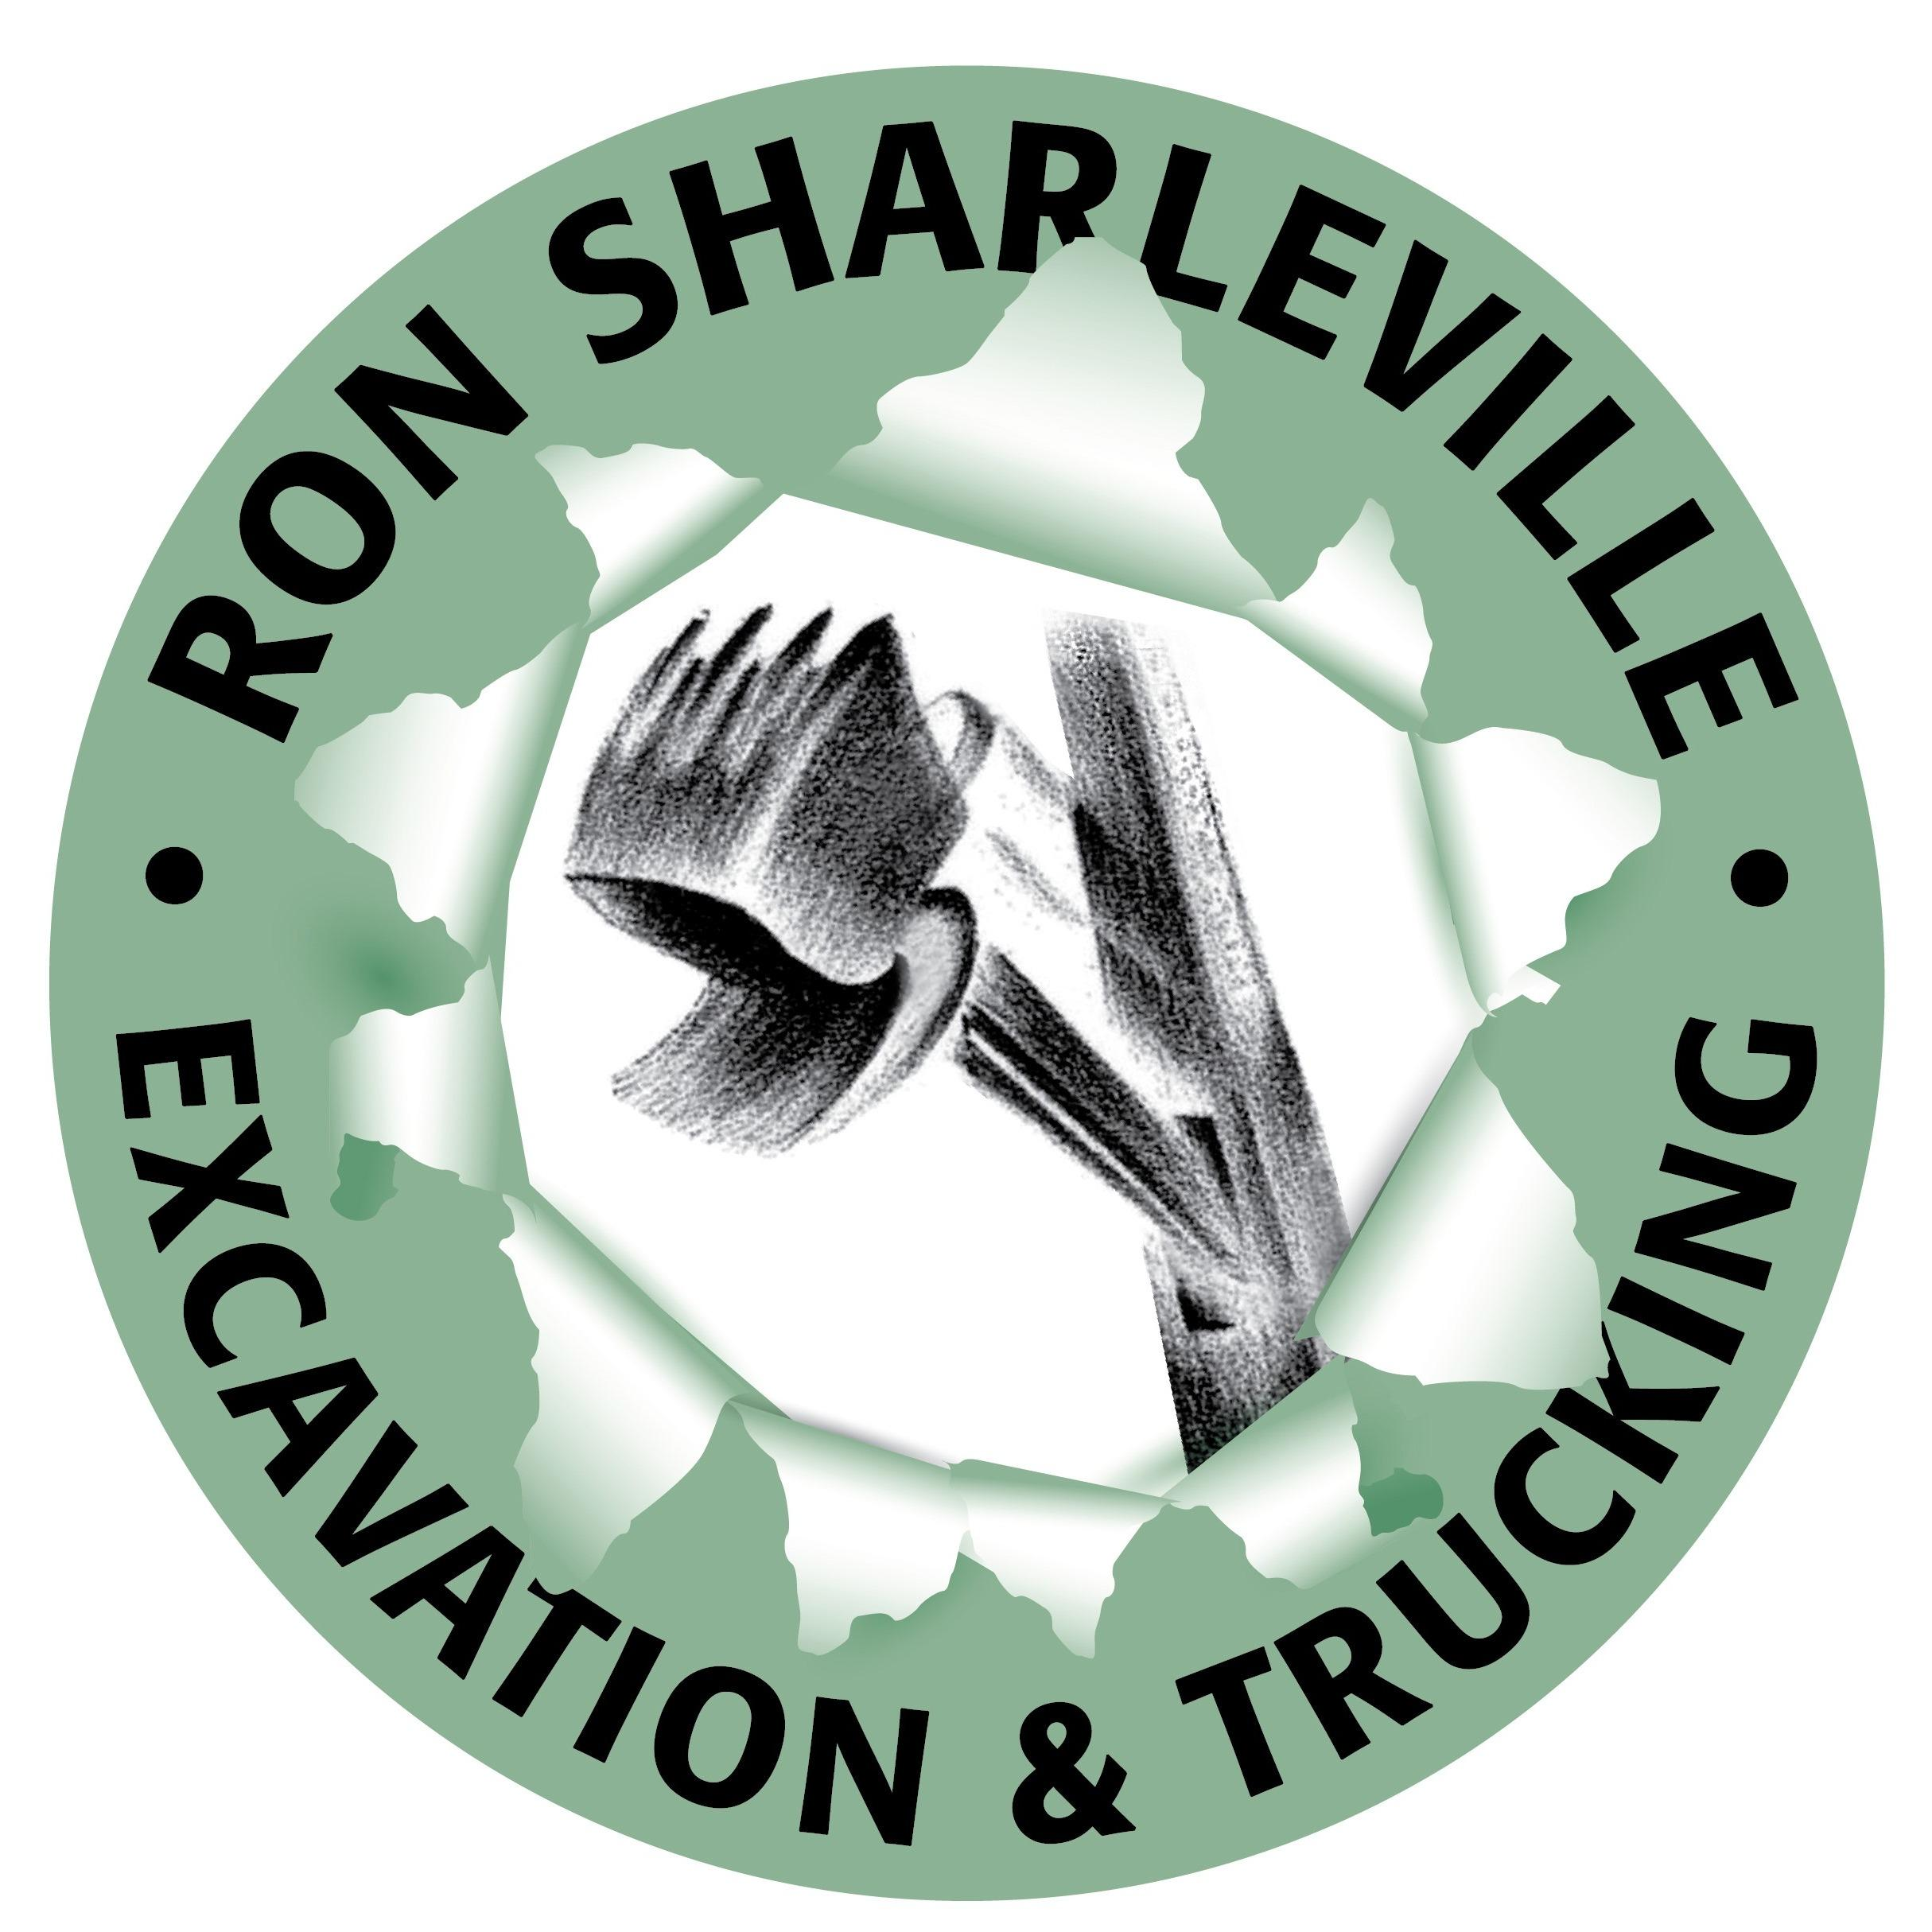 Ron Sharleville Excavation & Demolition - Worcester, MA 01603 - (508)981-6679 | ShowMeLocal.com